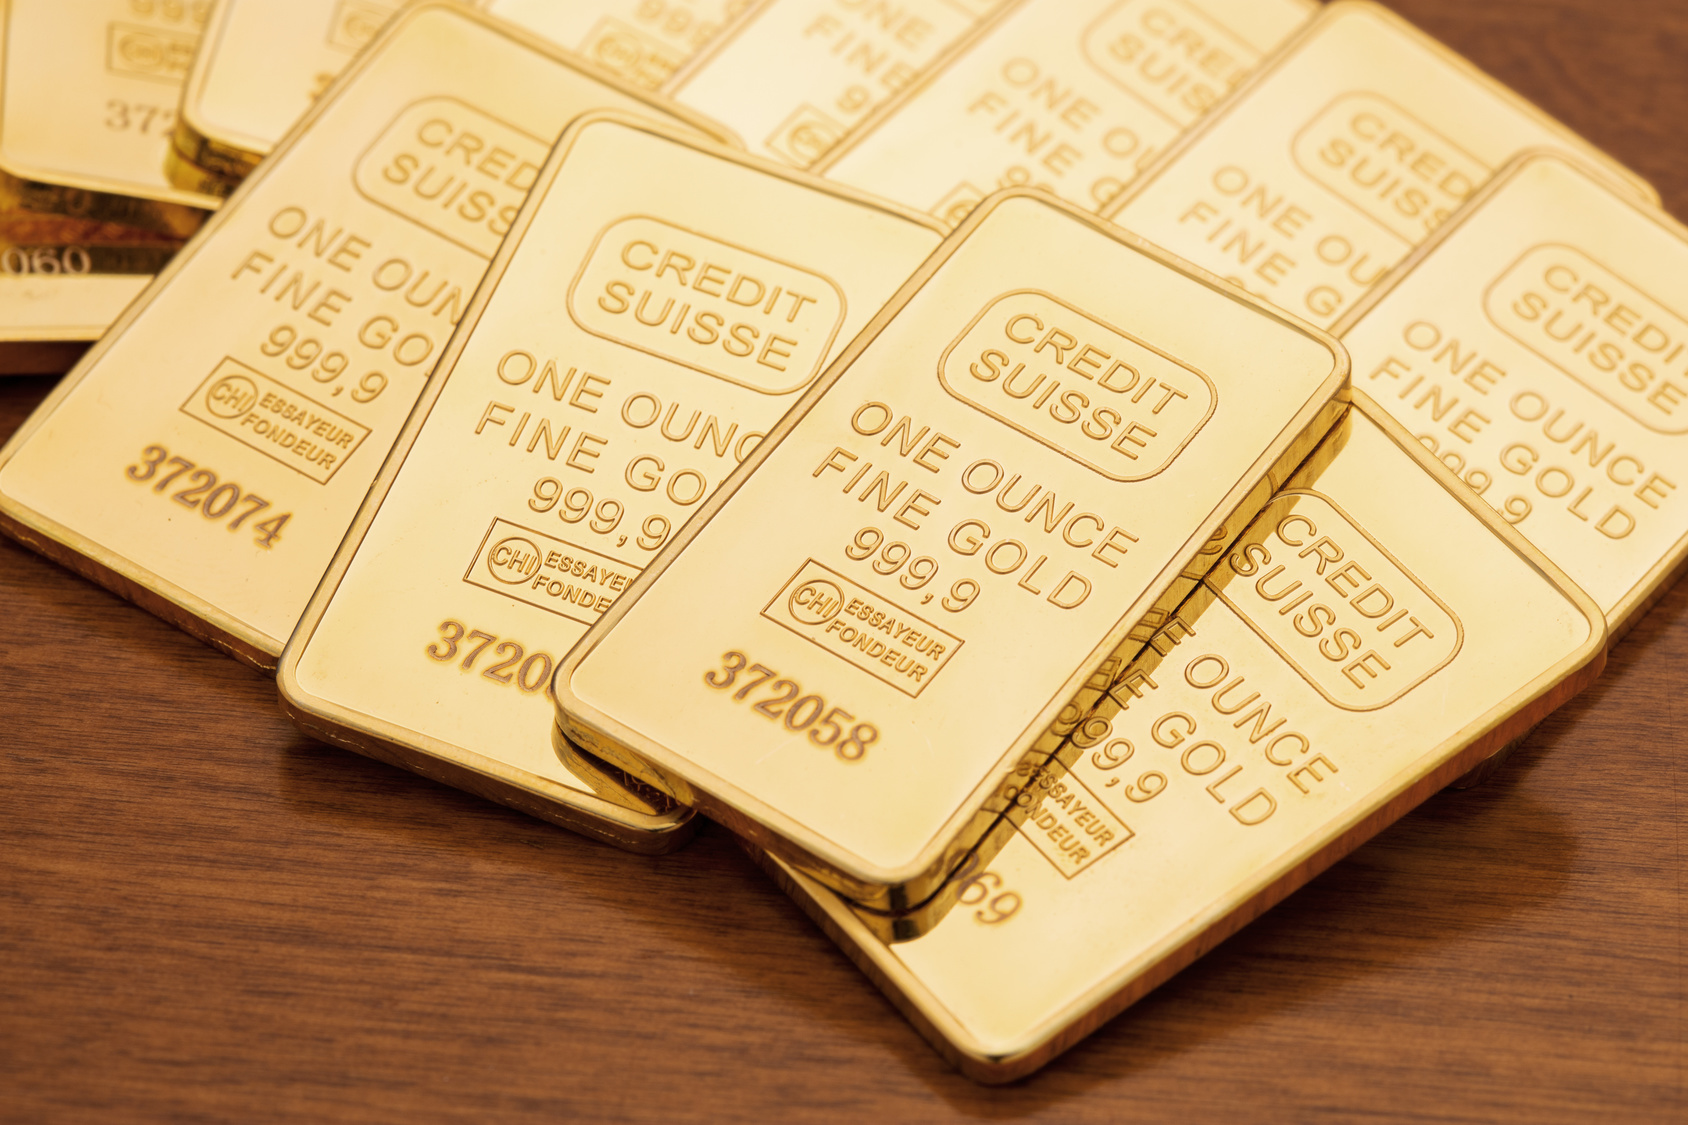 Credit Suisse Gold Bars